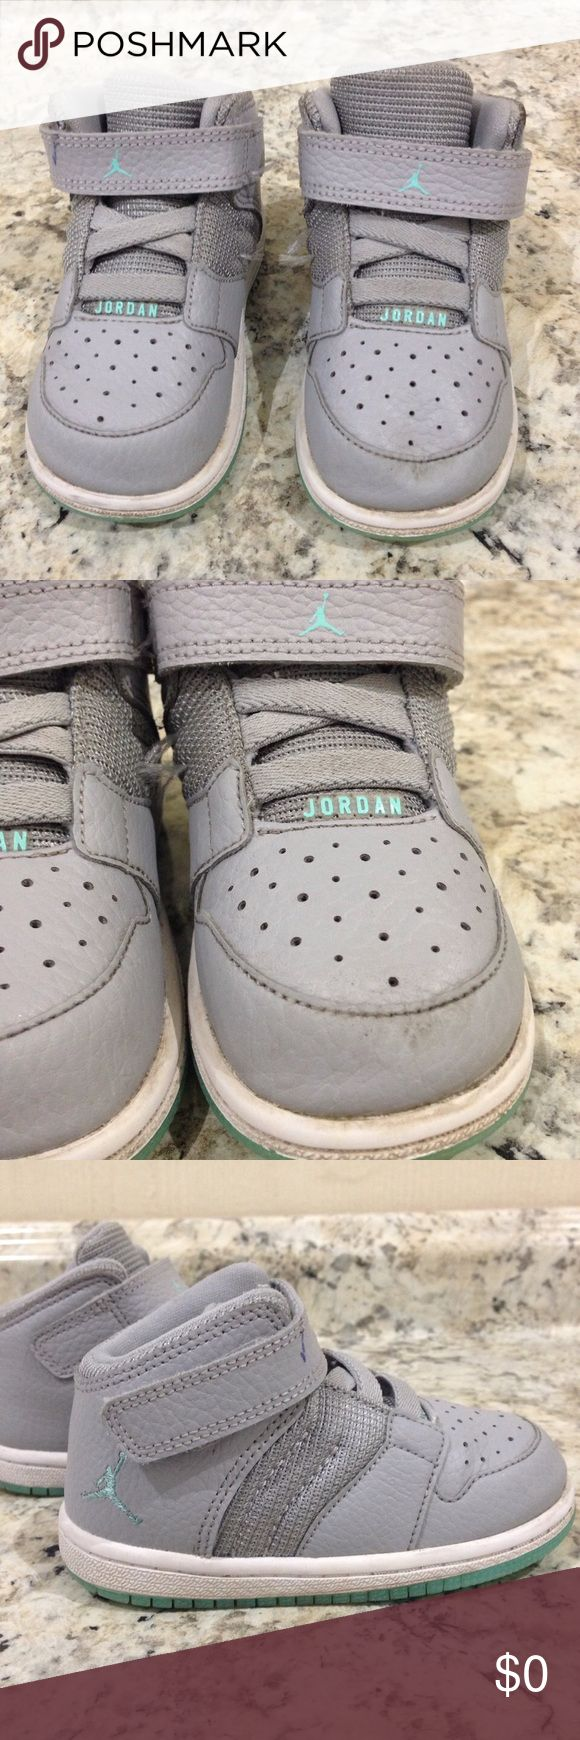 🌴NEW LISTING🌴 Jordan Sneakers Gray. Shows sign of wear.  Small Ink mark on Velcro band (see pic 5). Net has a rubbing (see pic 6). Rubber is soiled. Size 7C. (4/6) Jordan Shoes Sneakers